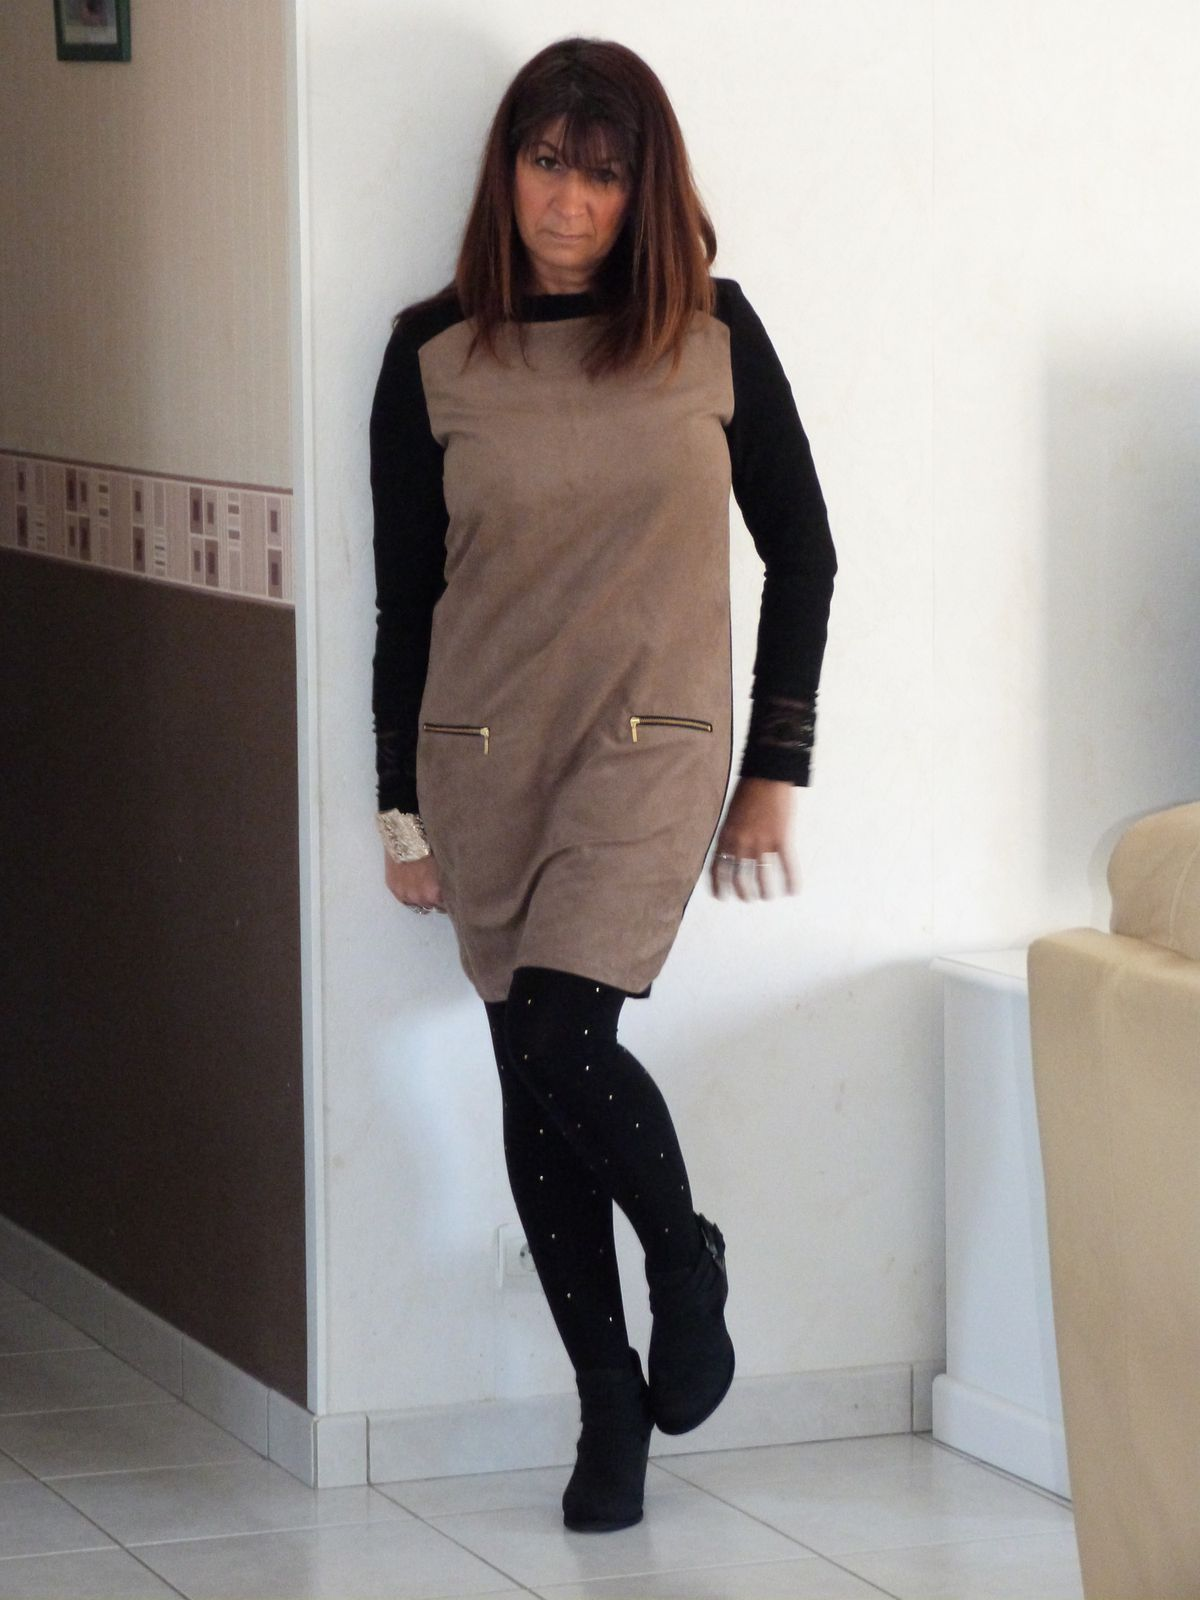 Robe : PROMOD , top : HetM , collants:SUITE BLANCO , bottines : ASOS, veste: MISS COQUINE..